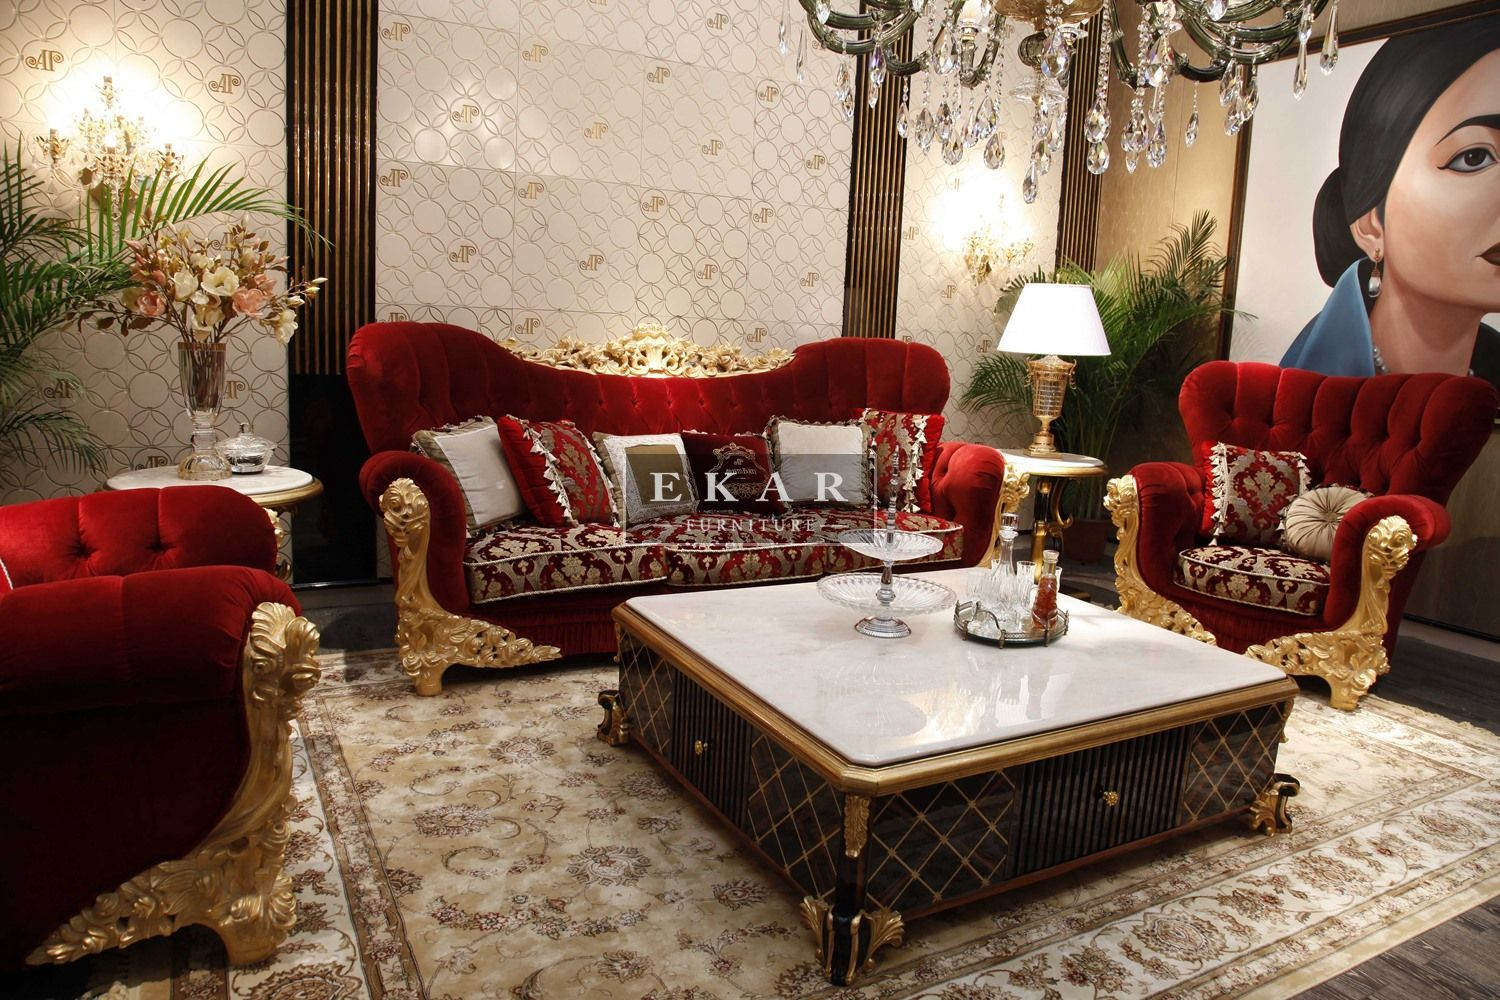 sofa furniture manufacturers. ekarfurniturerococostyleredsofaset sofas sofa furniture manufacturers